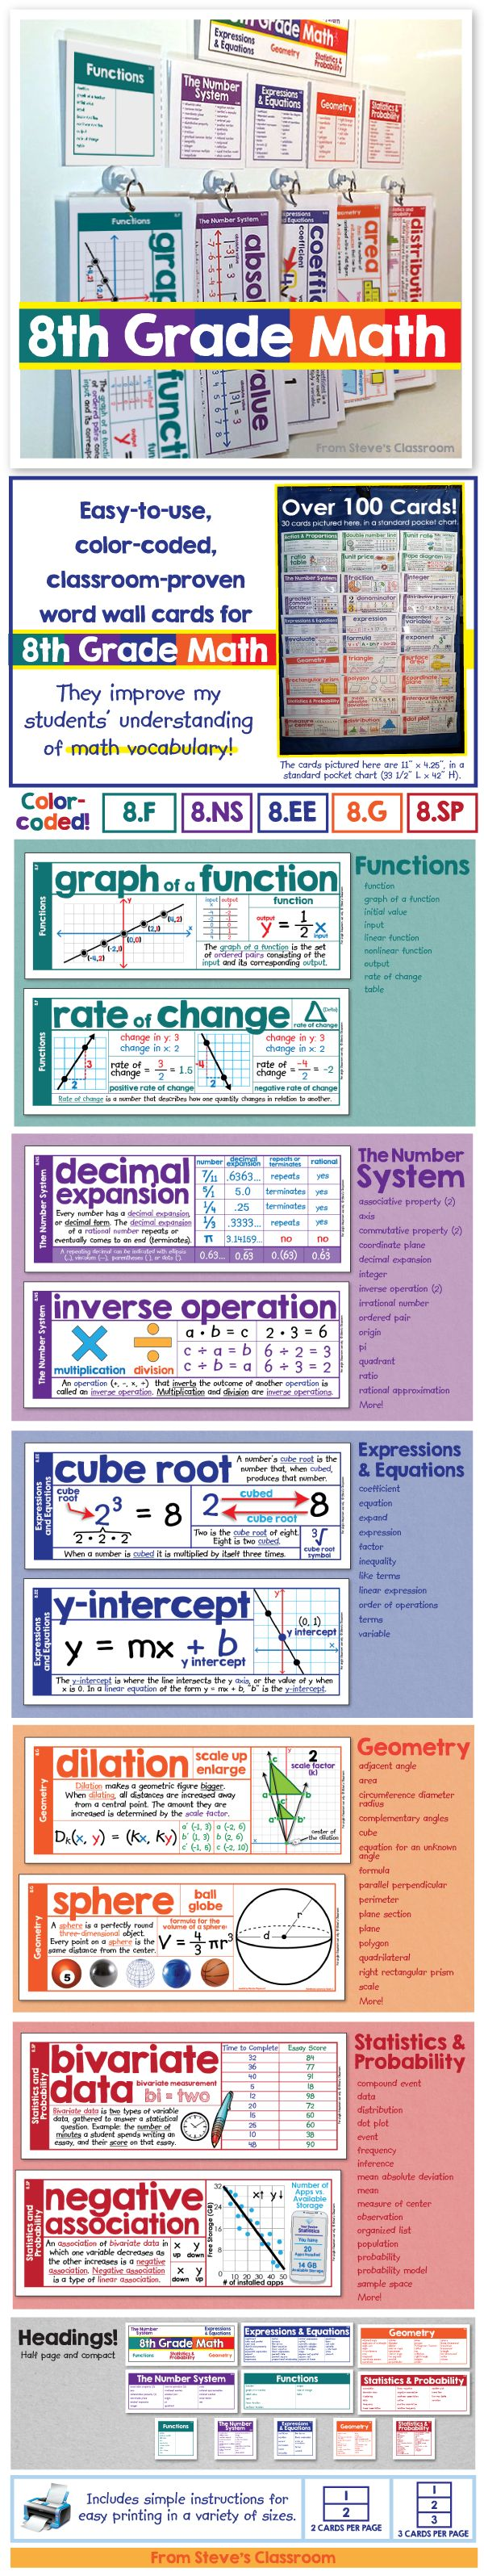 New Product! Half price until October 1! Color coded vocabulary word wall cards for 8th grade math.  Every card has an example to help students grasp eighth grade math concepts like functions, the number system, expressions and equations, geometry, and statistics. The color coding makes it easy to stay organized and identify the different domains. You can even print them smaller and black & white for pasting into interactive journals.